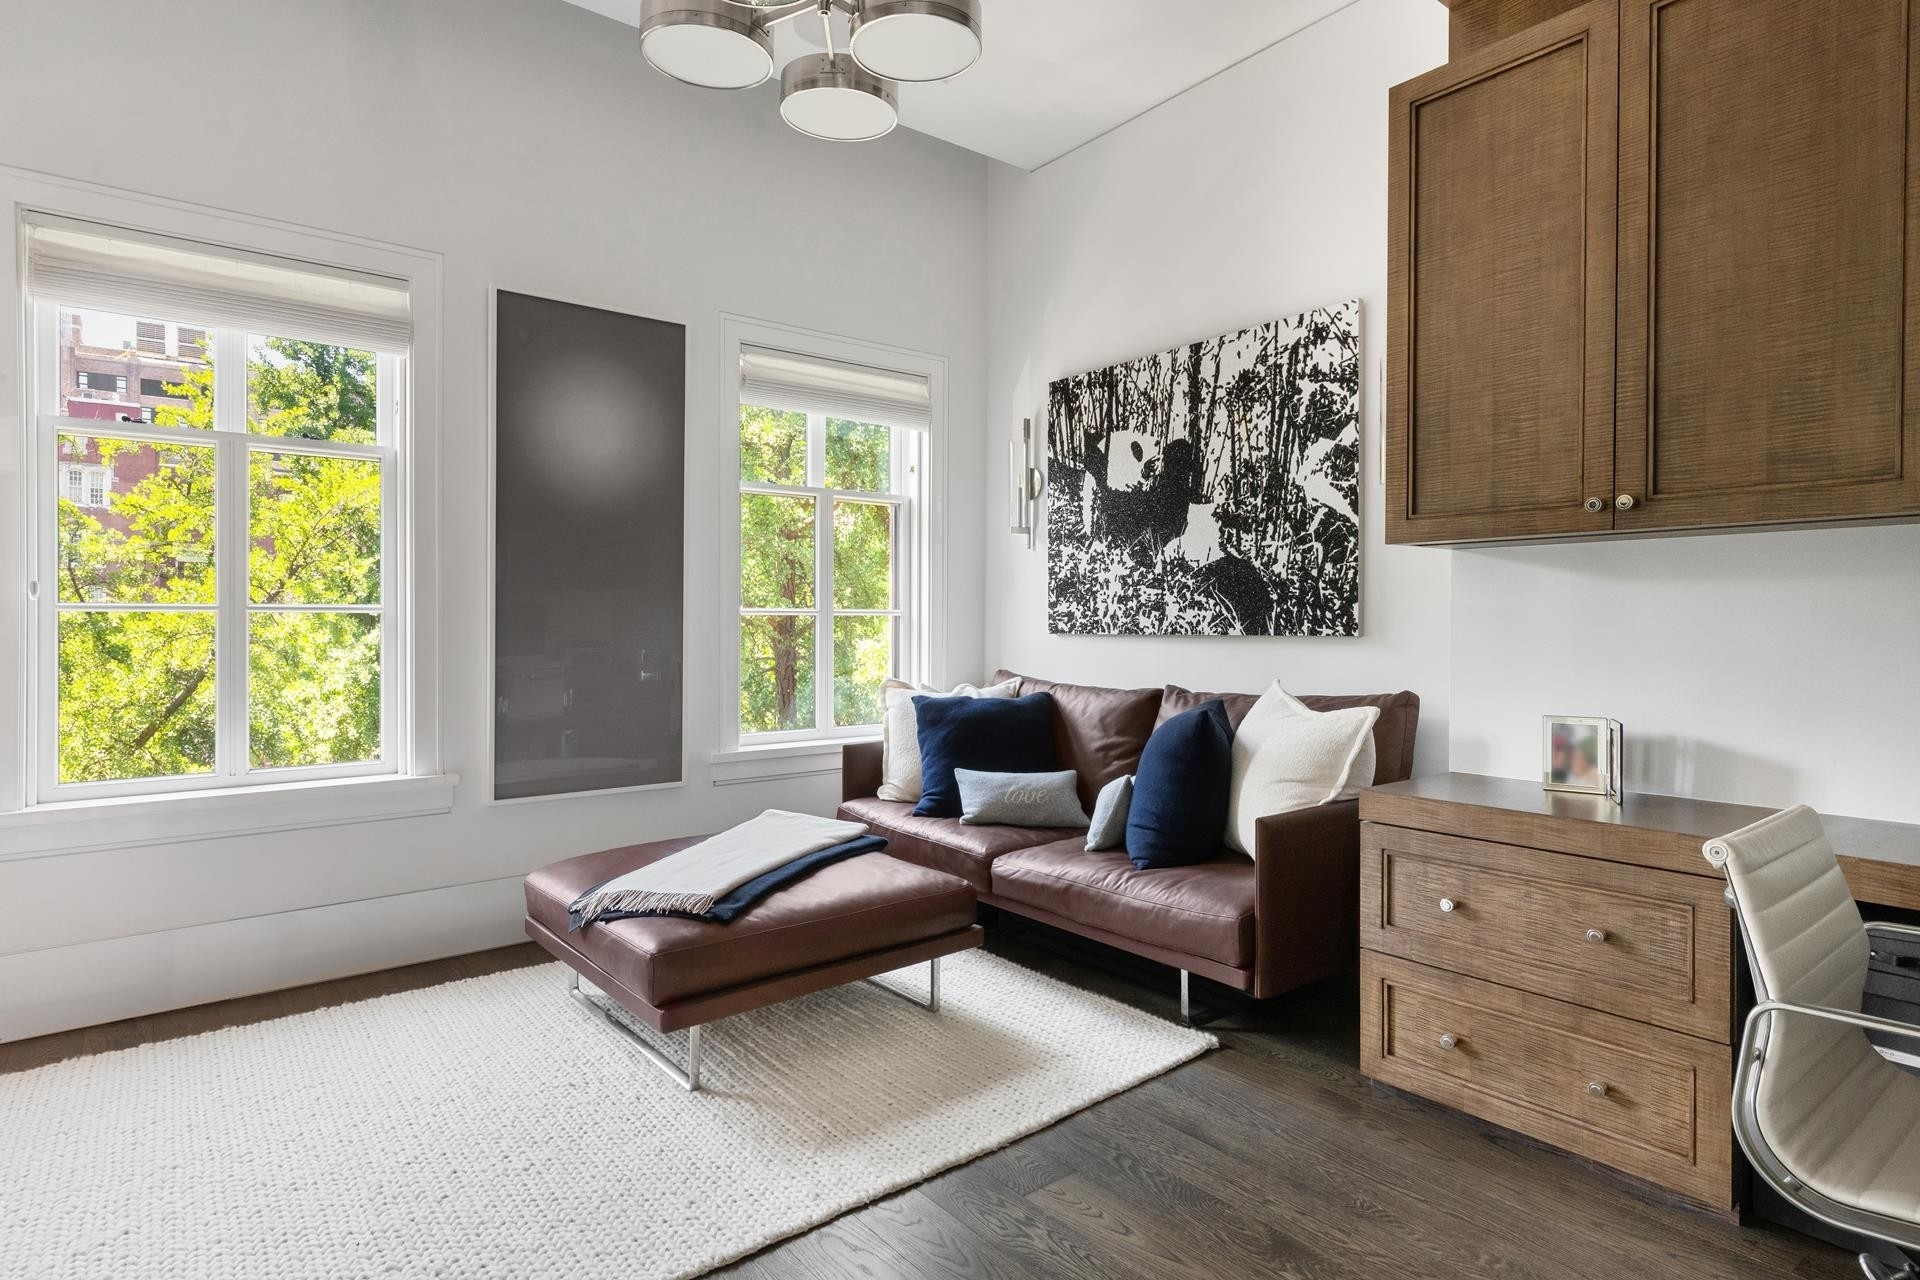 19. Single Family Townhouse for Sale at West Village, New York, NY 10014